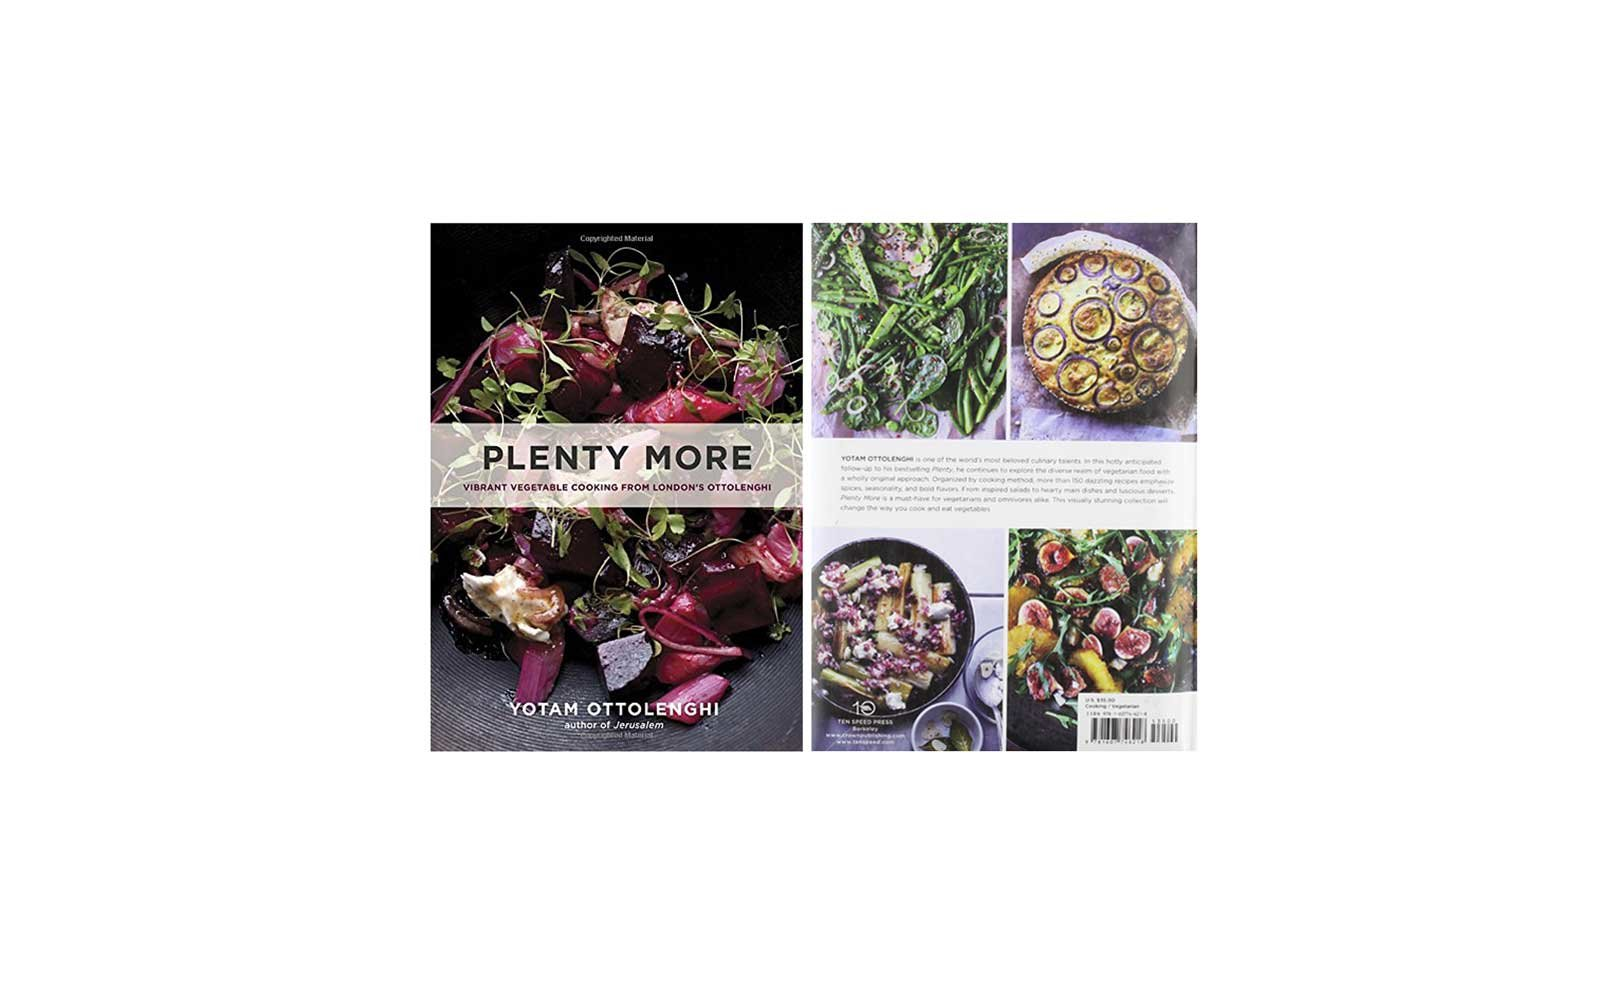 Vibrant Vegetable Cooking from London's Ottolenghi